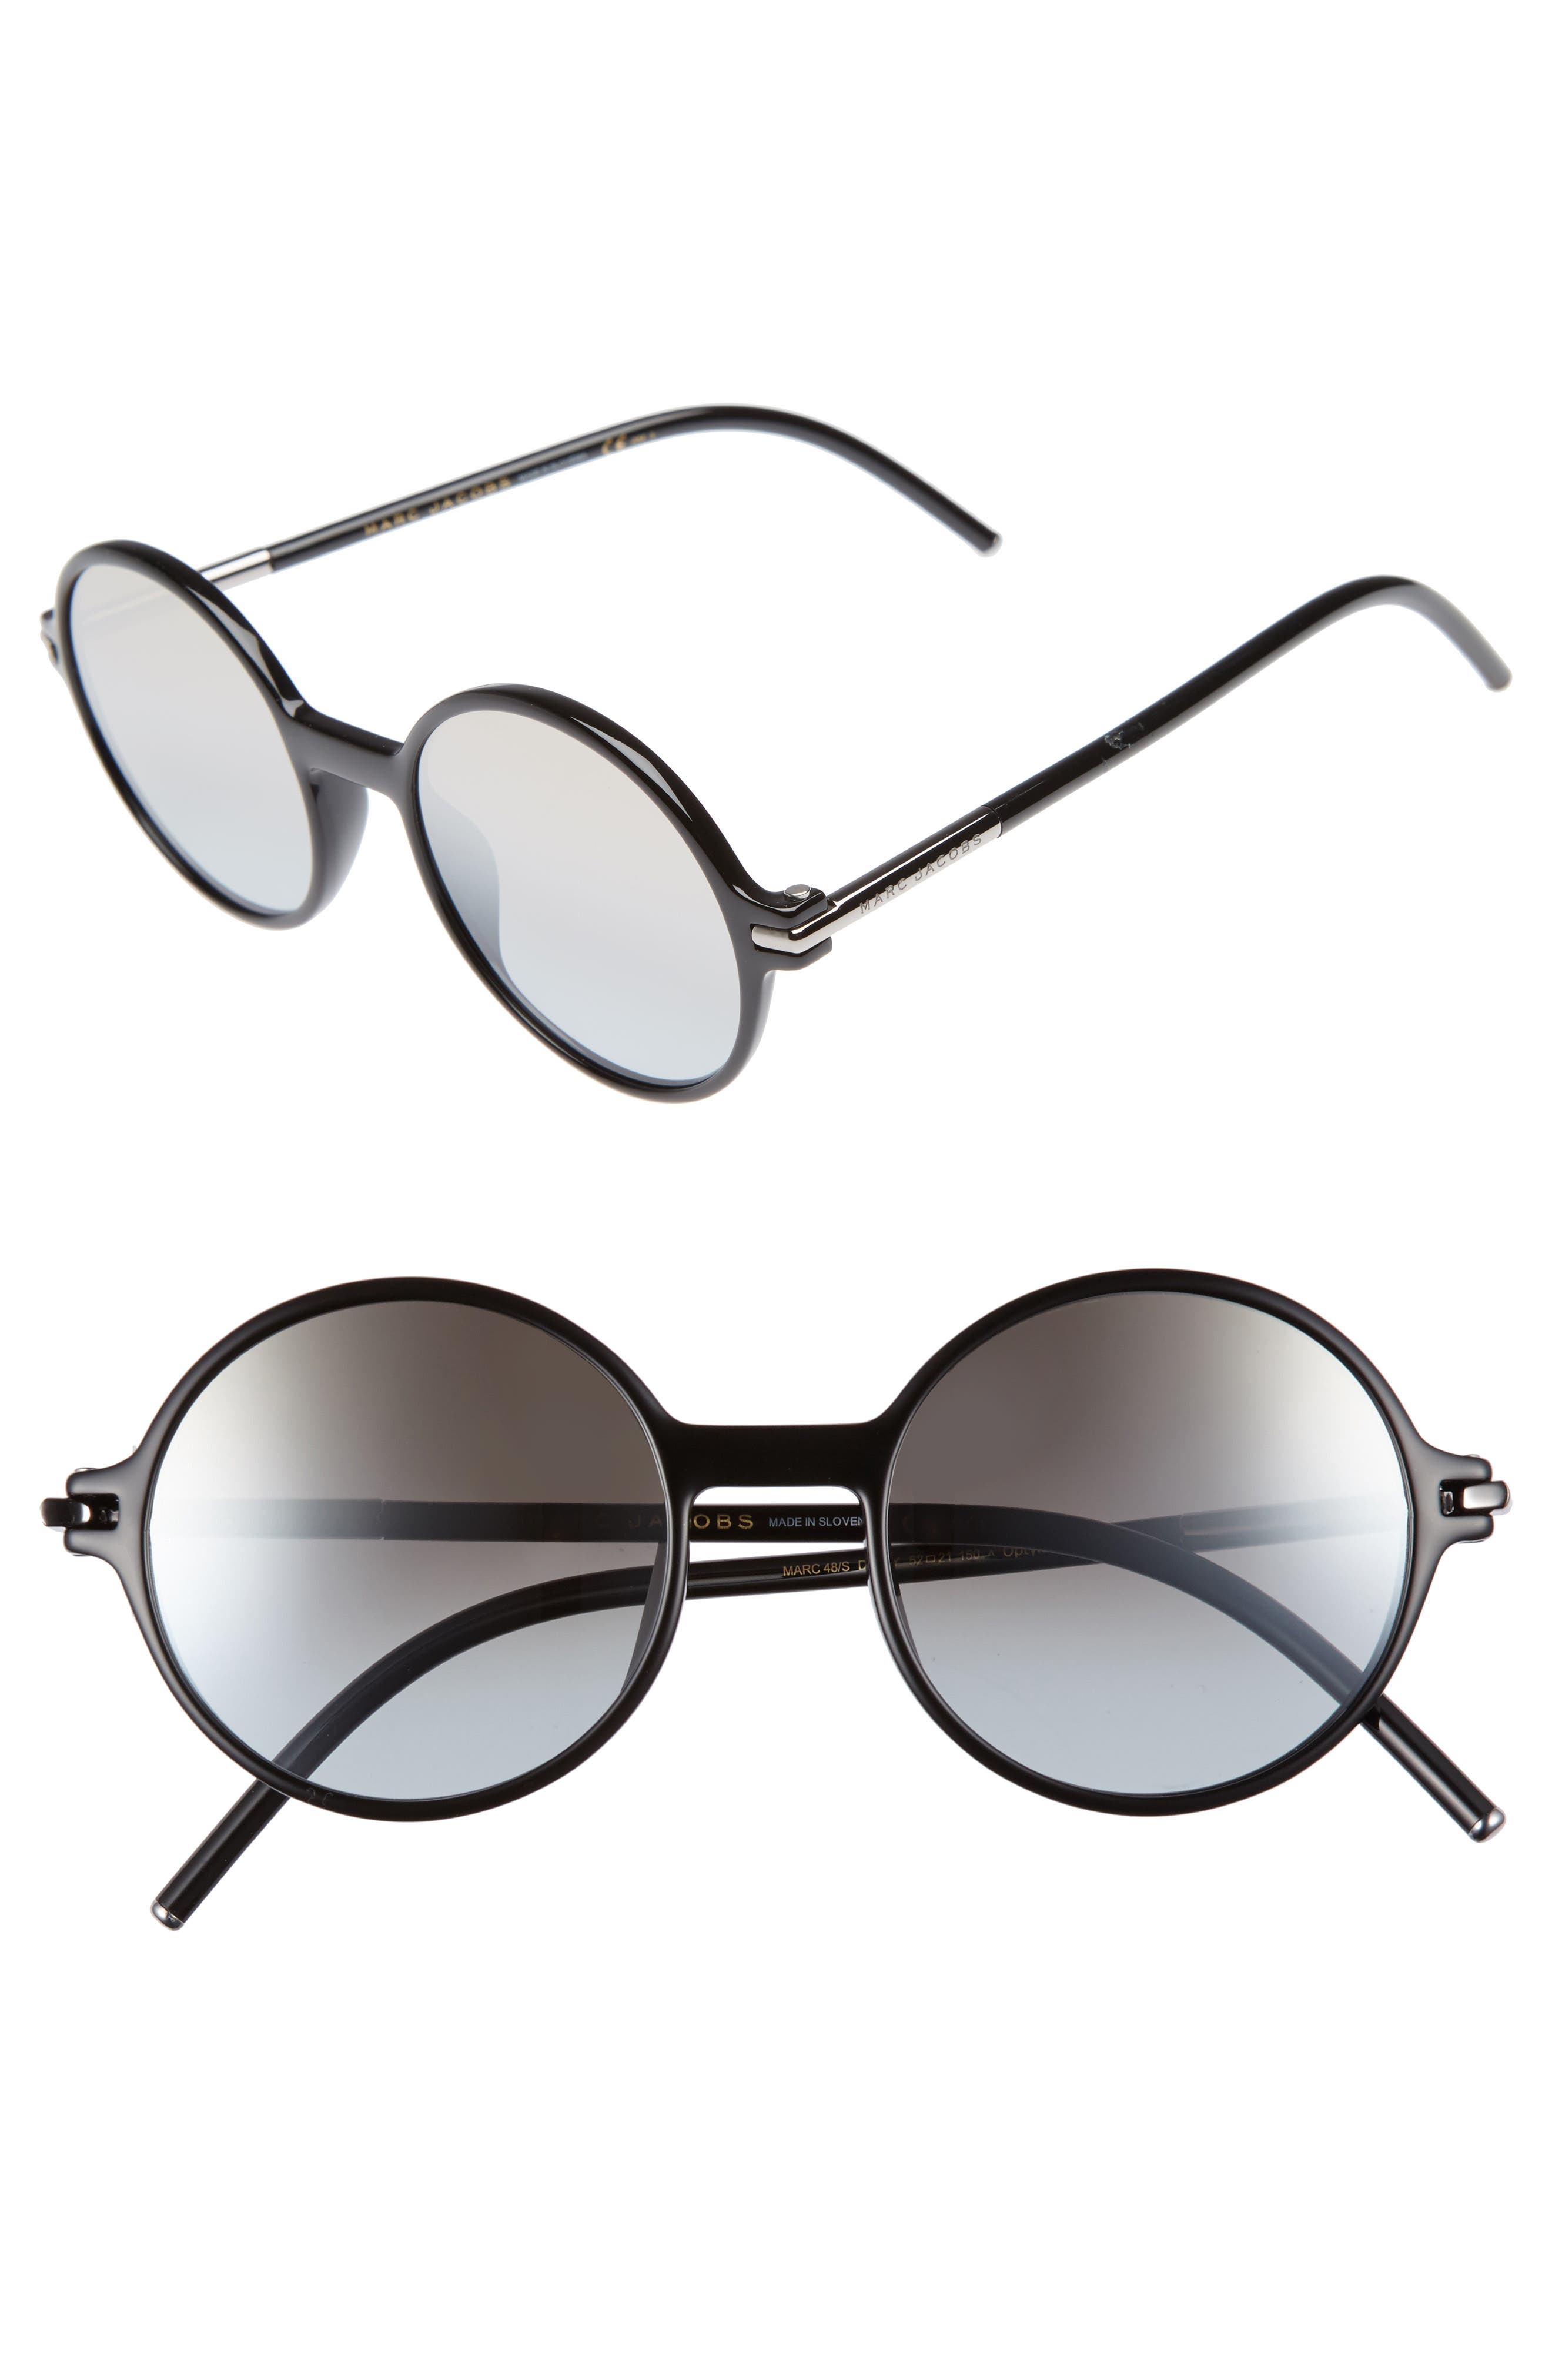 Alternate Image 1 Selected - MARC JACOBS 52mm Round Sunglasses